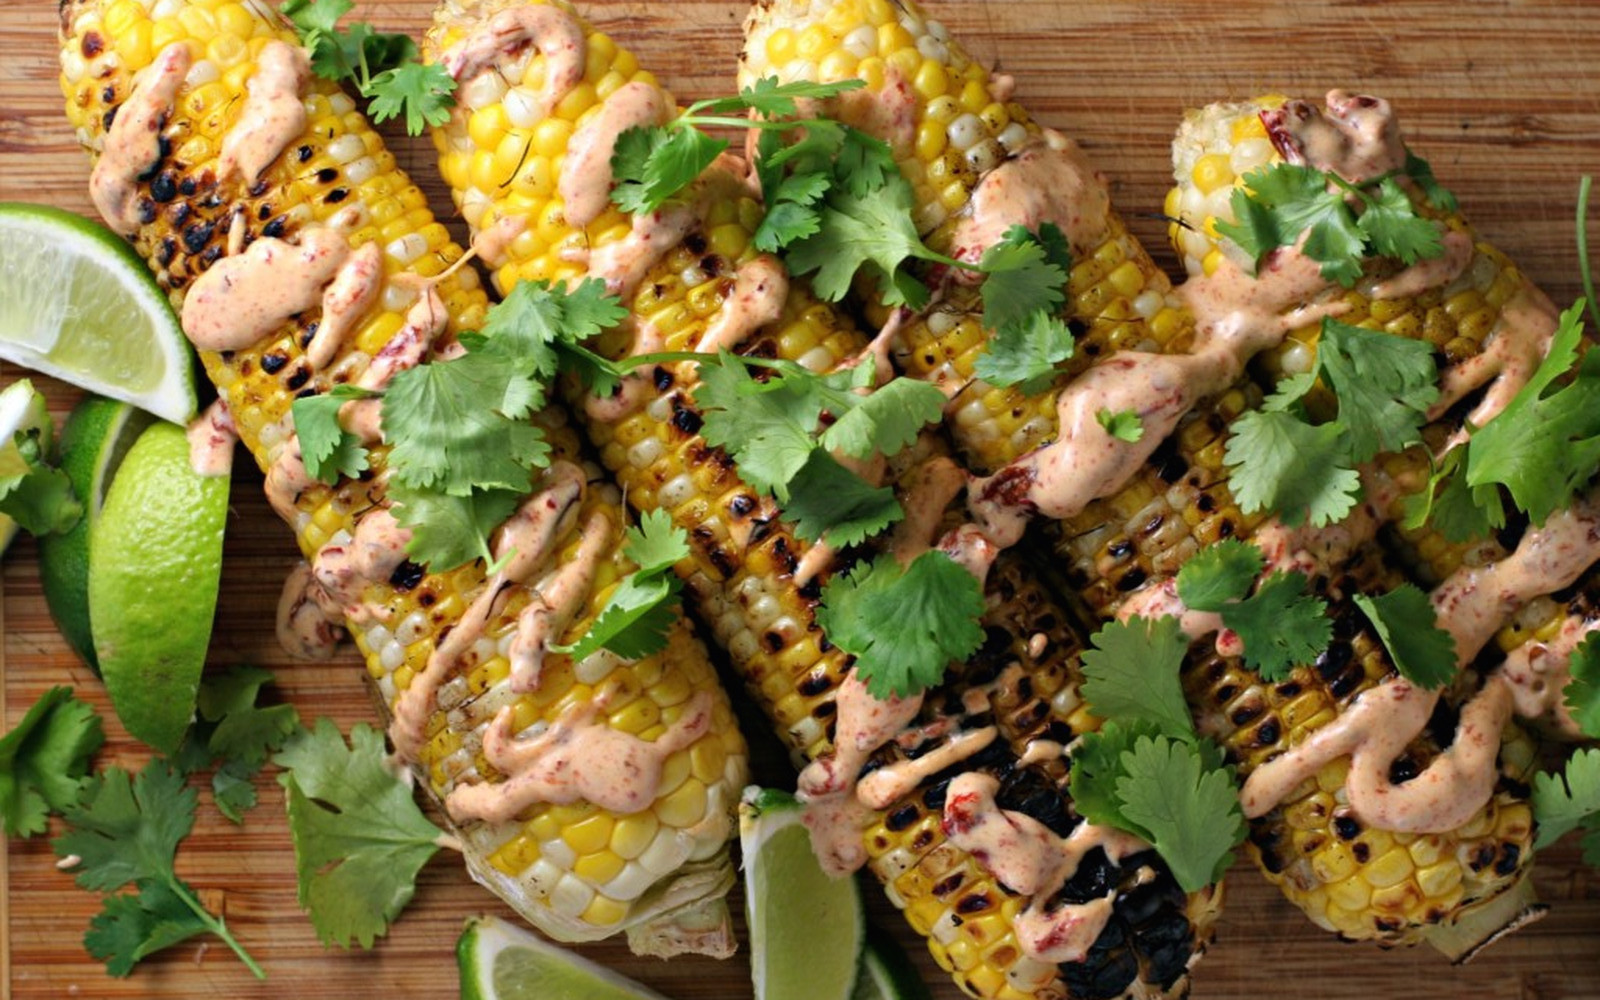 Vegan Hot n' Spicy Mexican Street Corn